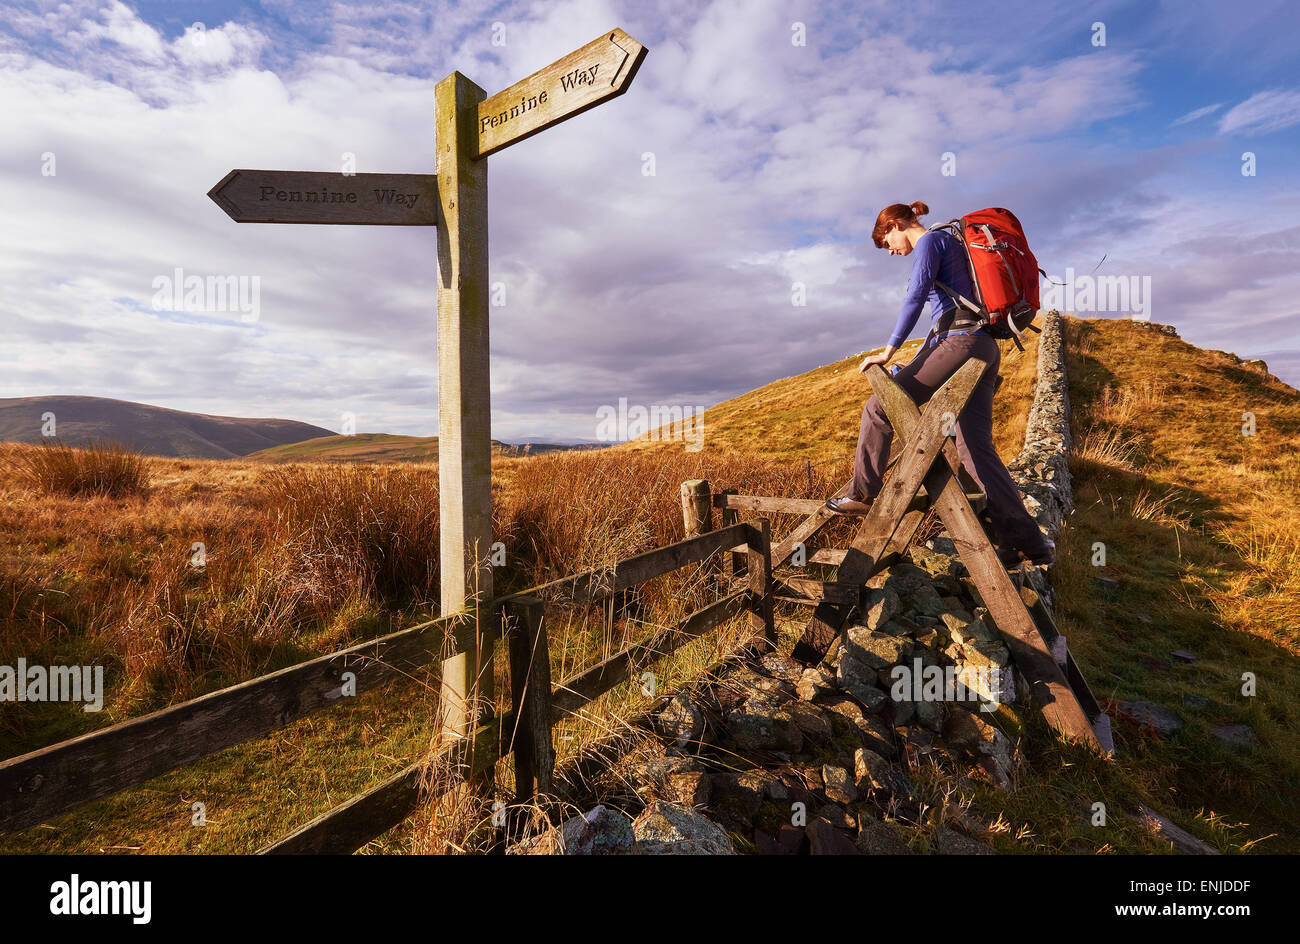 A woman crossing a stile on the Pennine Way, English Countryside walk.UK - Stock Image